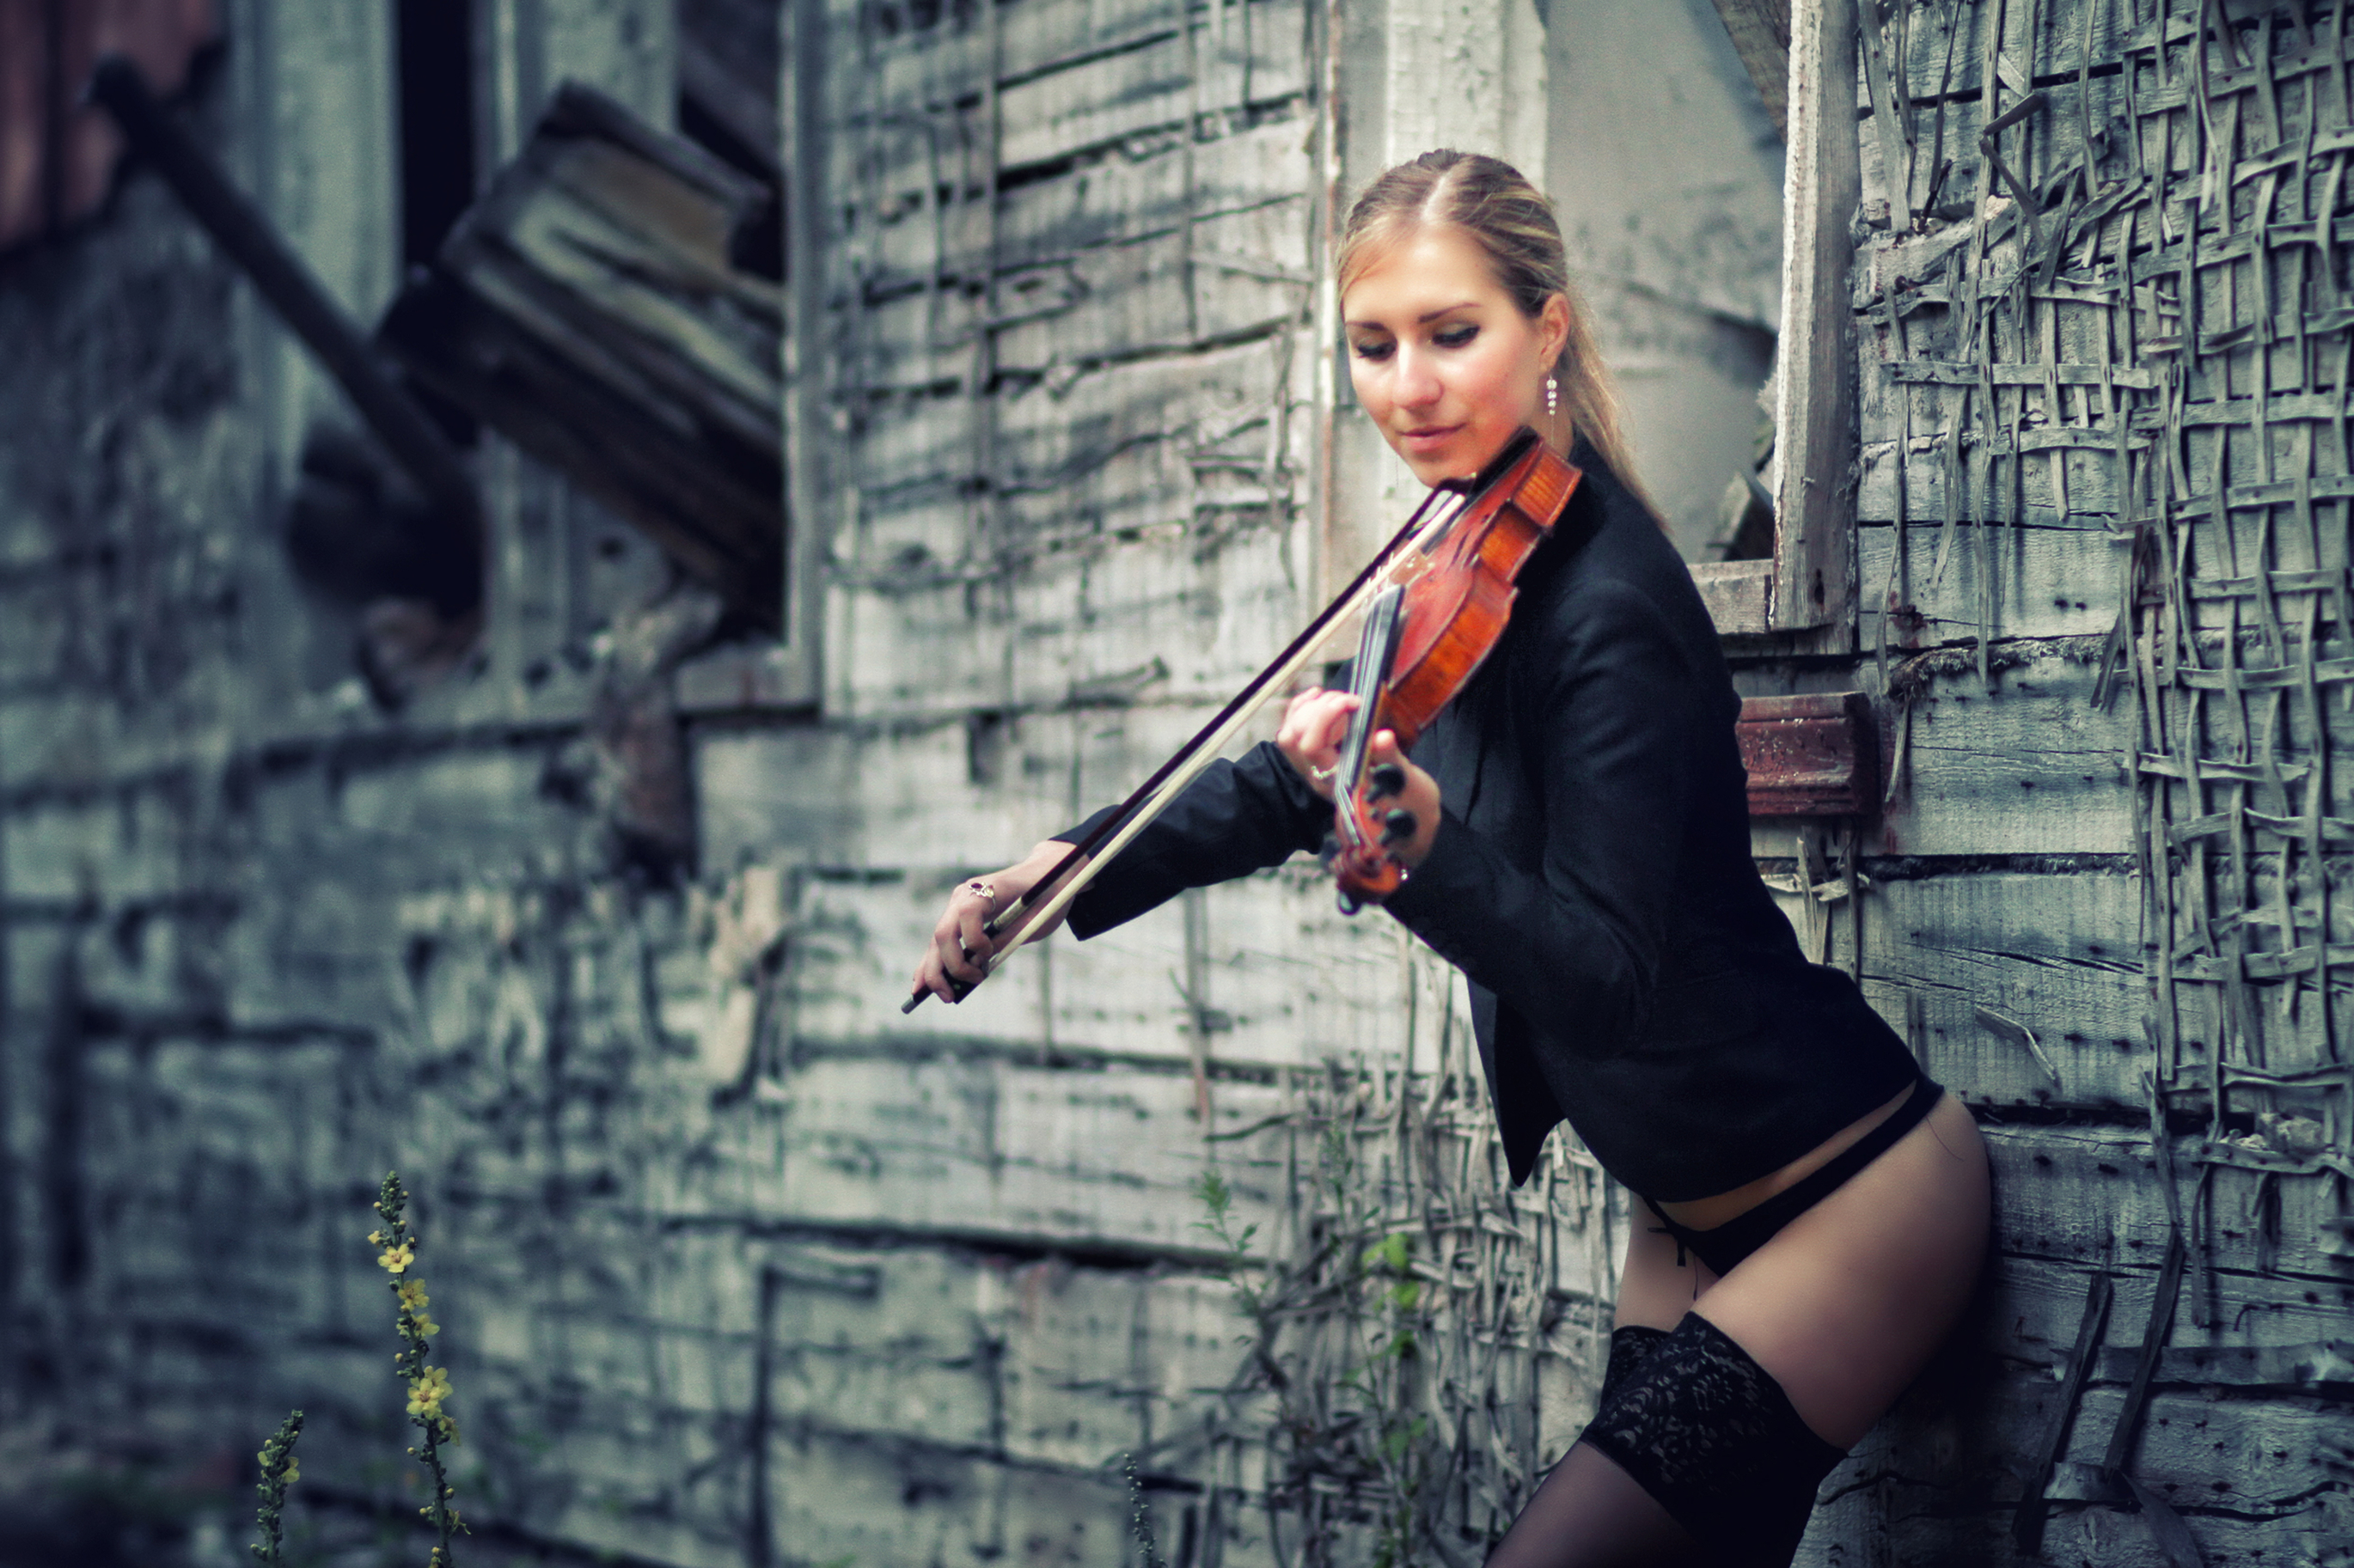 Russian girl playing violin in a provocative manner